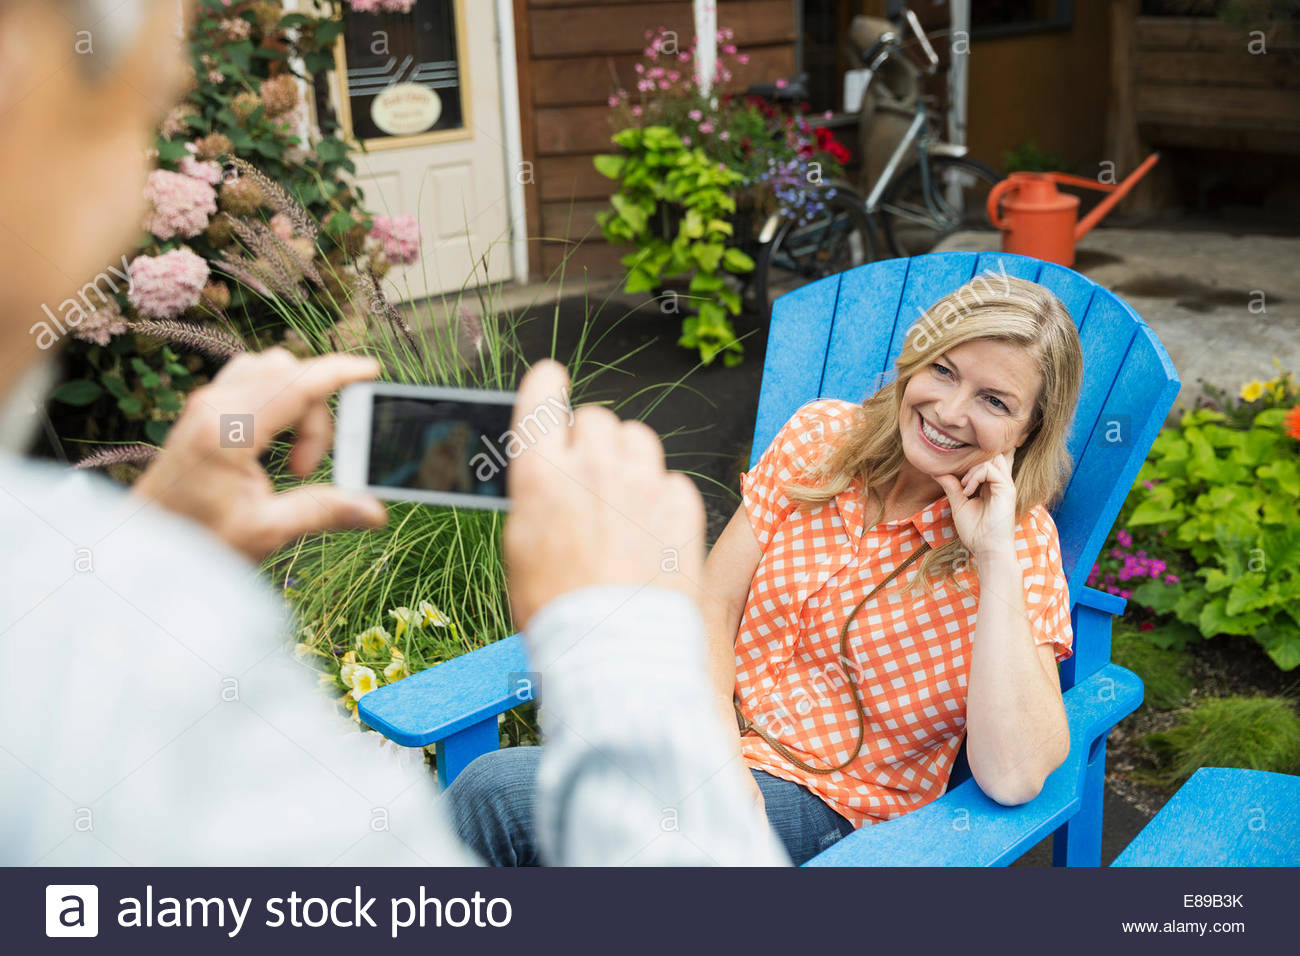 Man photographing woman with cell phone Photo Stock